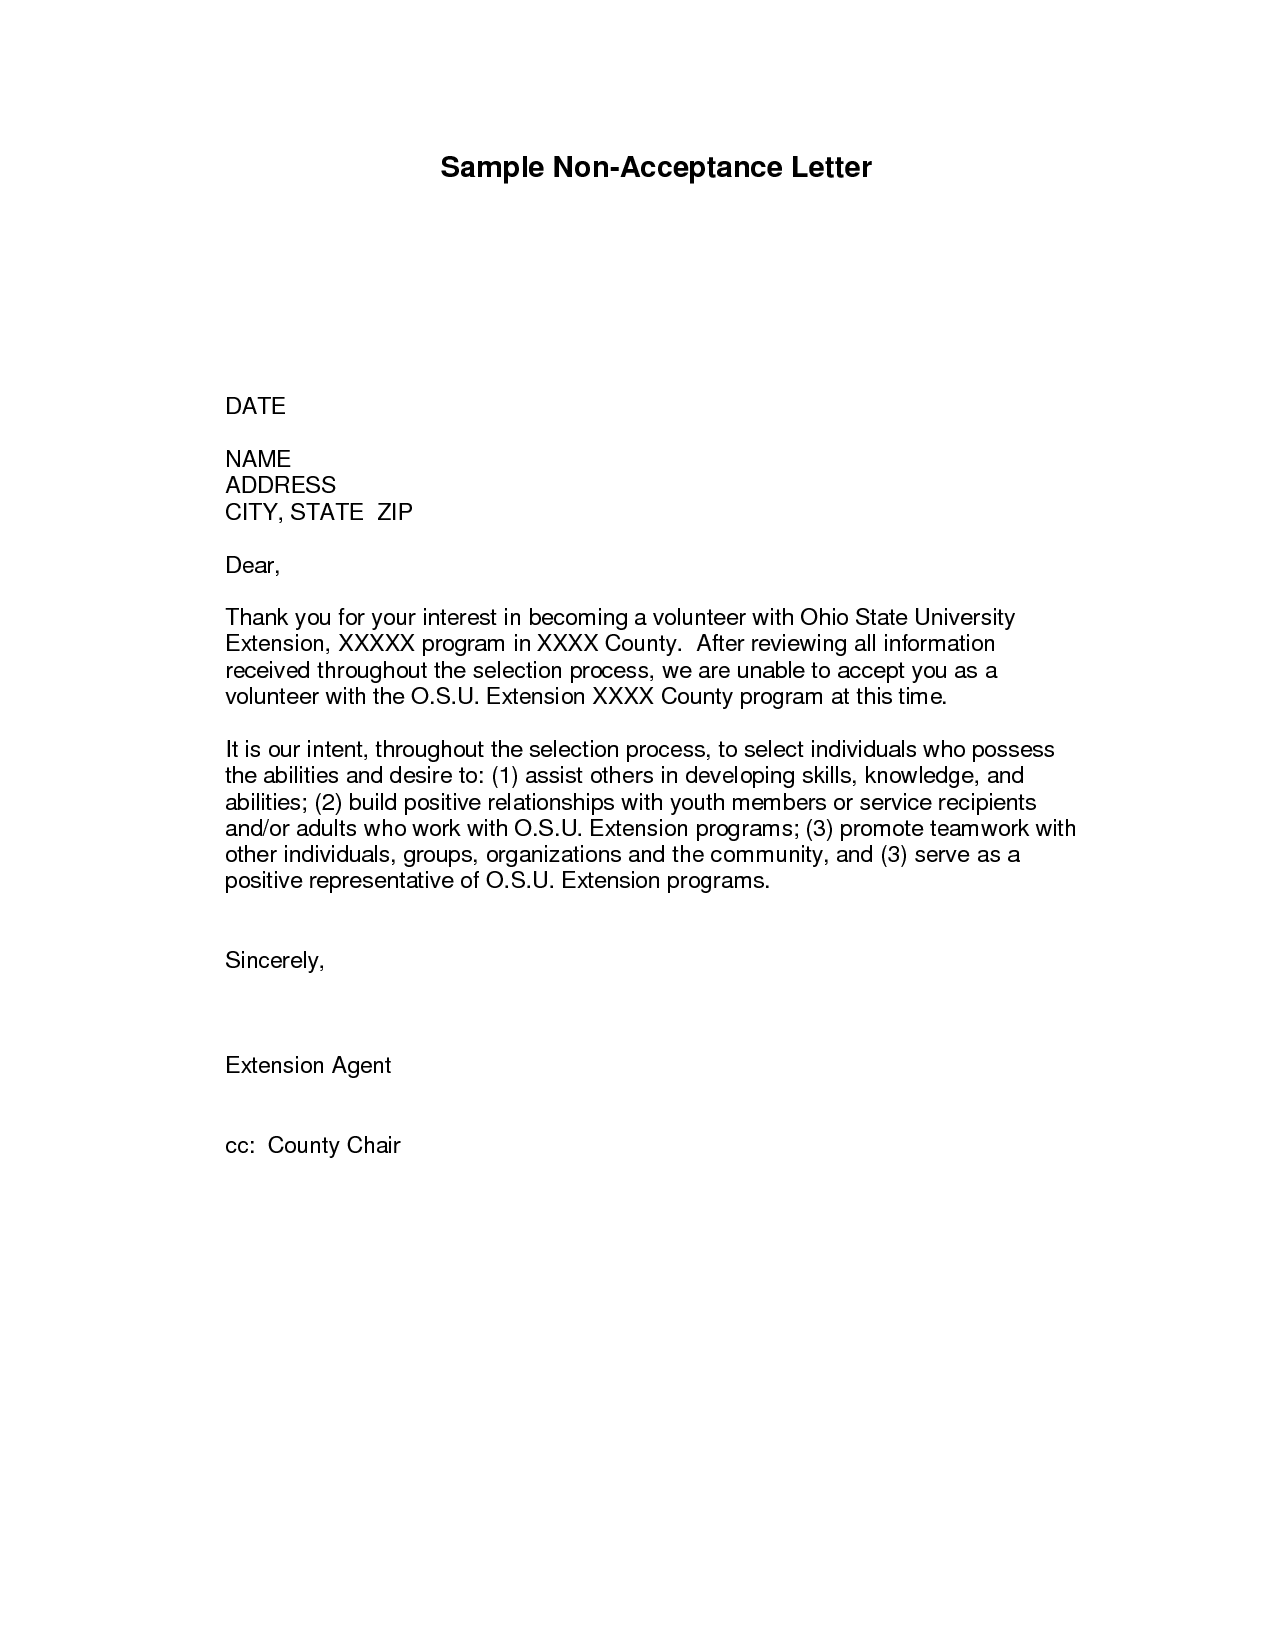 Program Acceptance Letter   Sample Letter Accepting An Offer Of Admission  To A Graduate Program.  Apology Acceptance Letter Sample